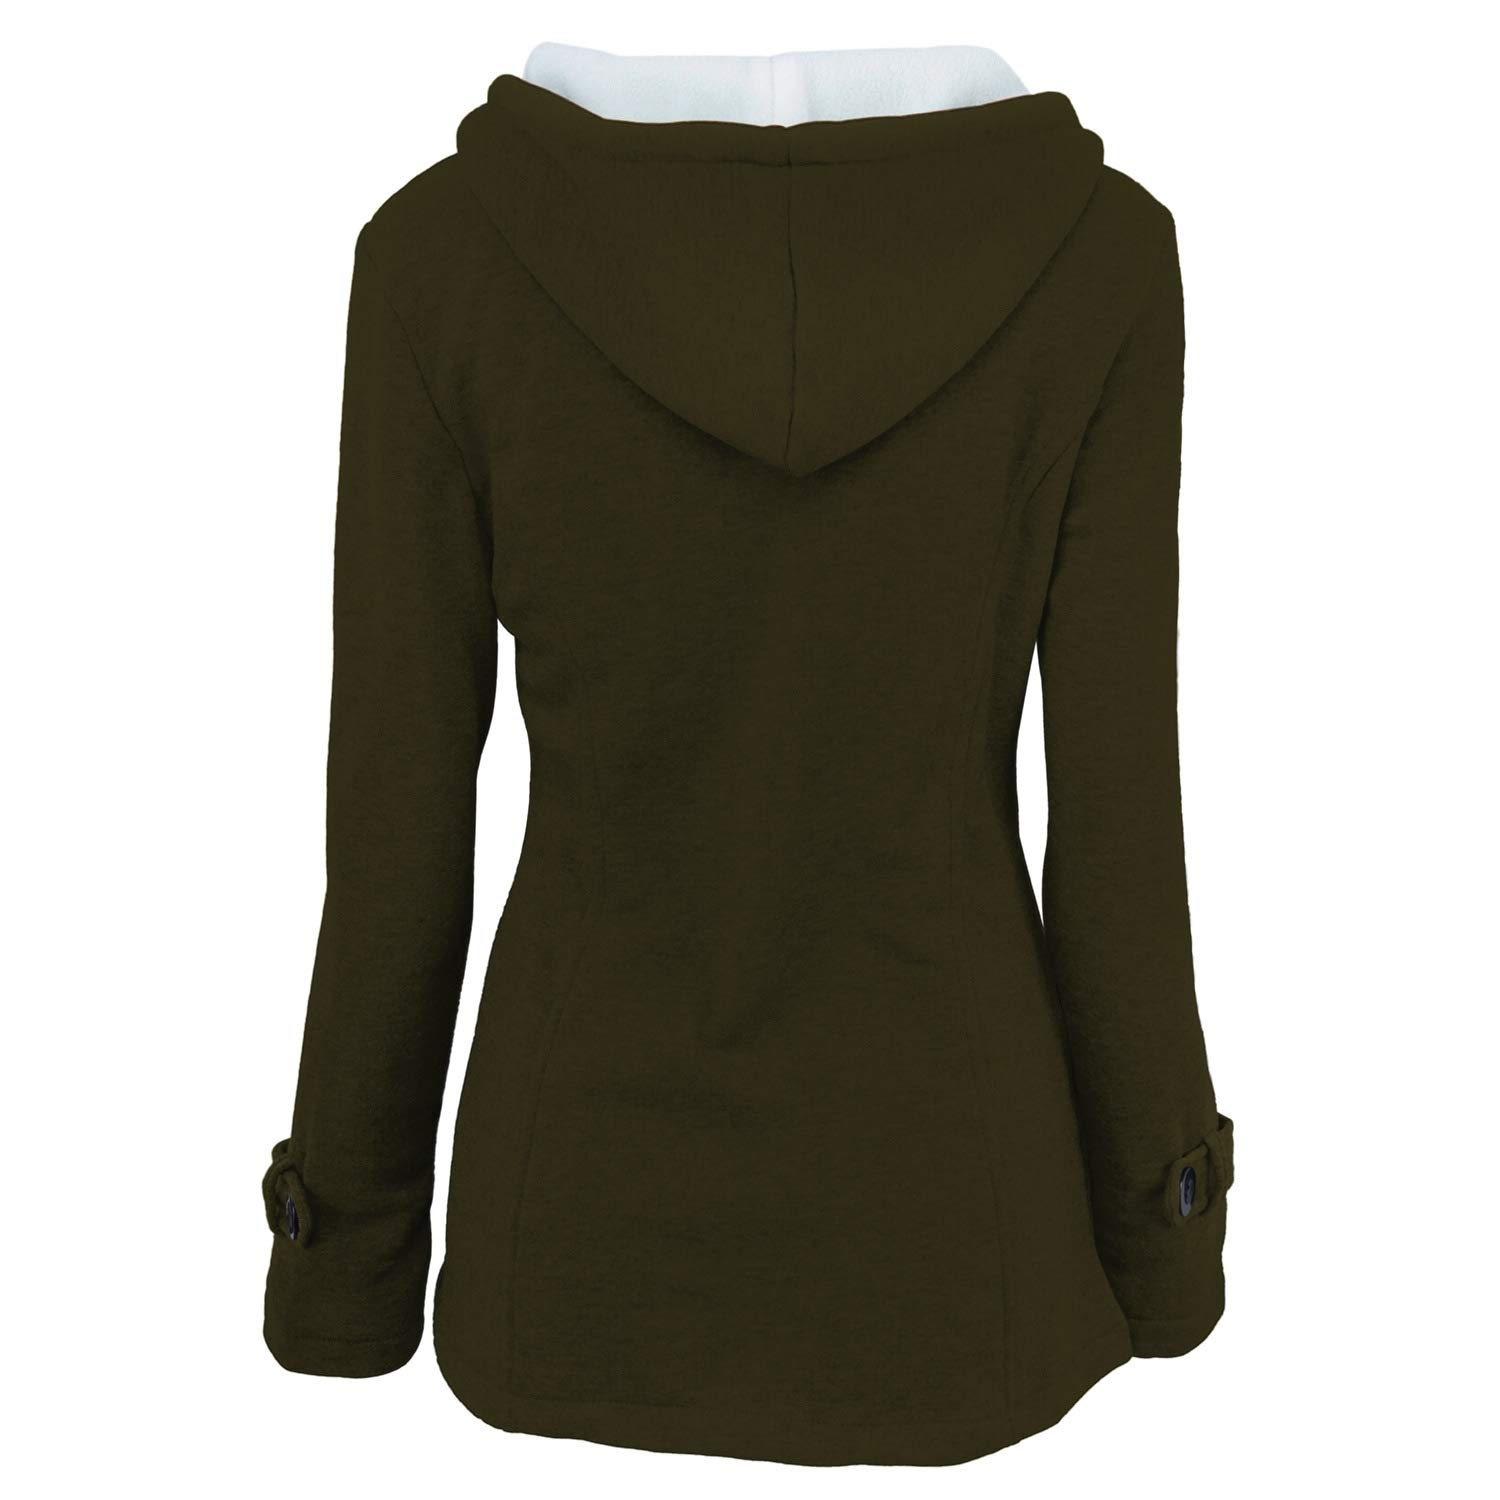 YUNY Womens Hooded Topcoat Wool Buckle Outwear All-Contest Warm-up Jacket Green 4XL